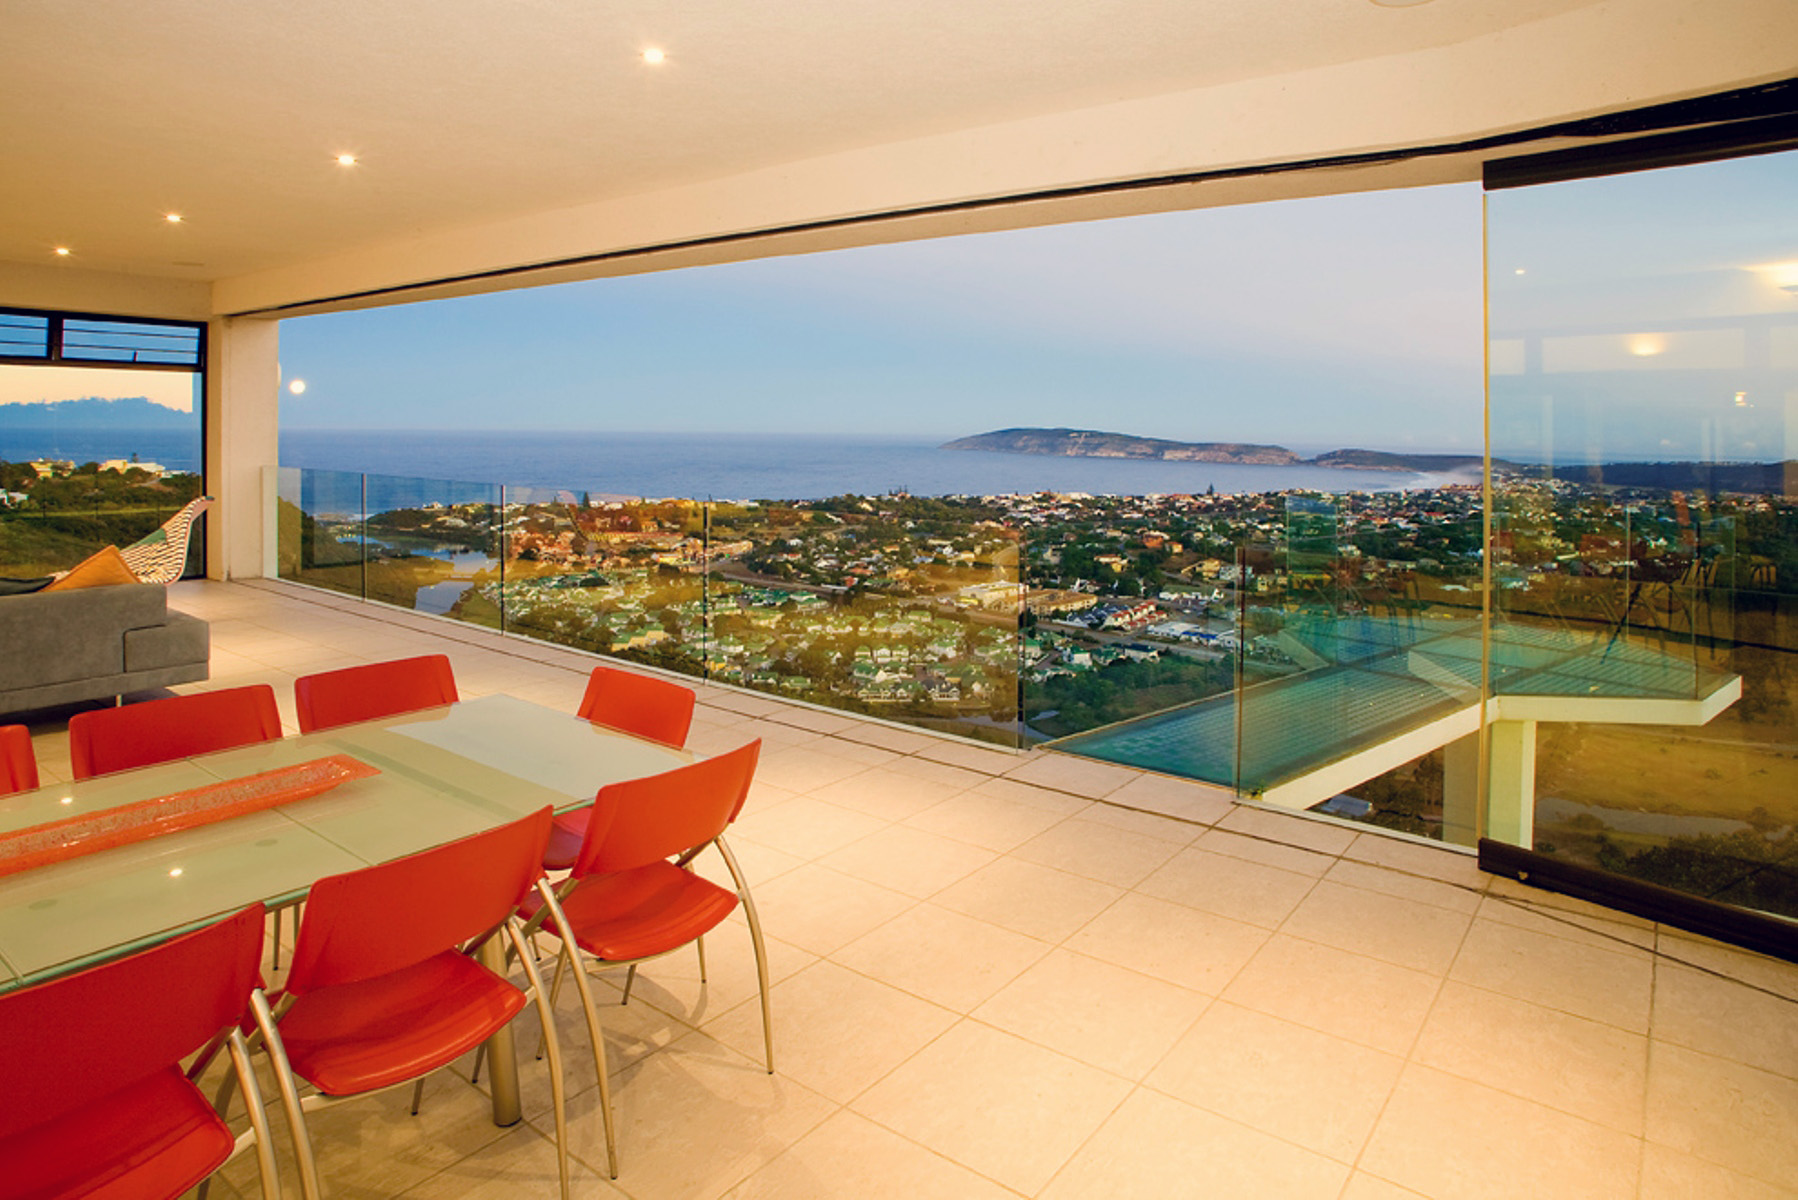 Single Family Home for Sale at Cliff Top Home with Panoramic Views Plettenberg Bay, Western Cape, 6600 South Africa